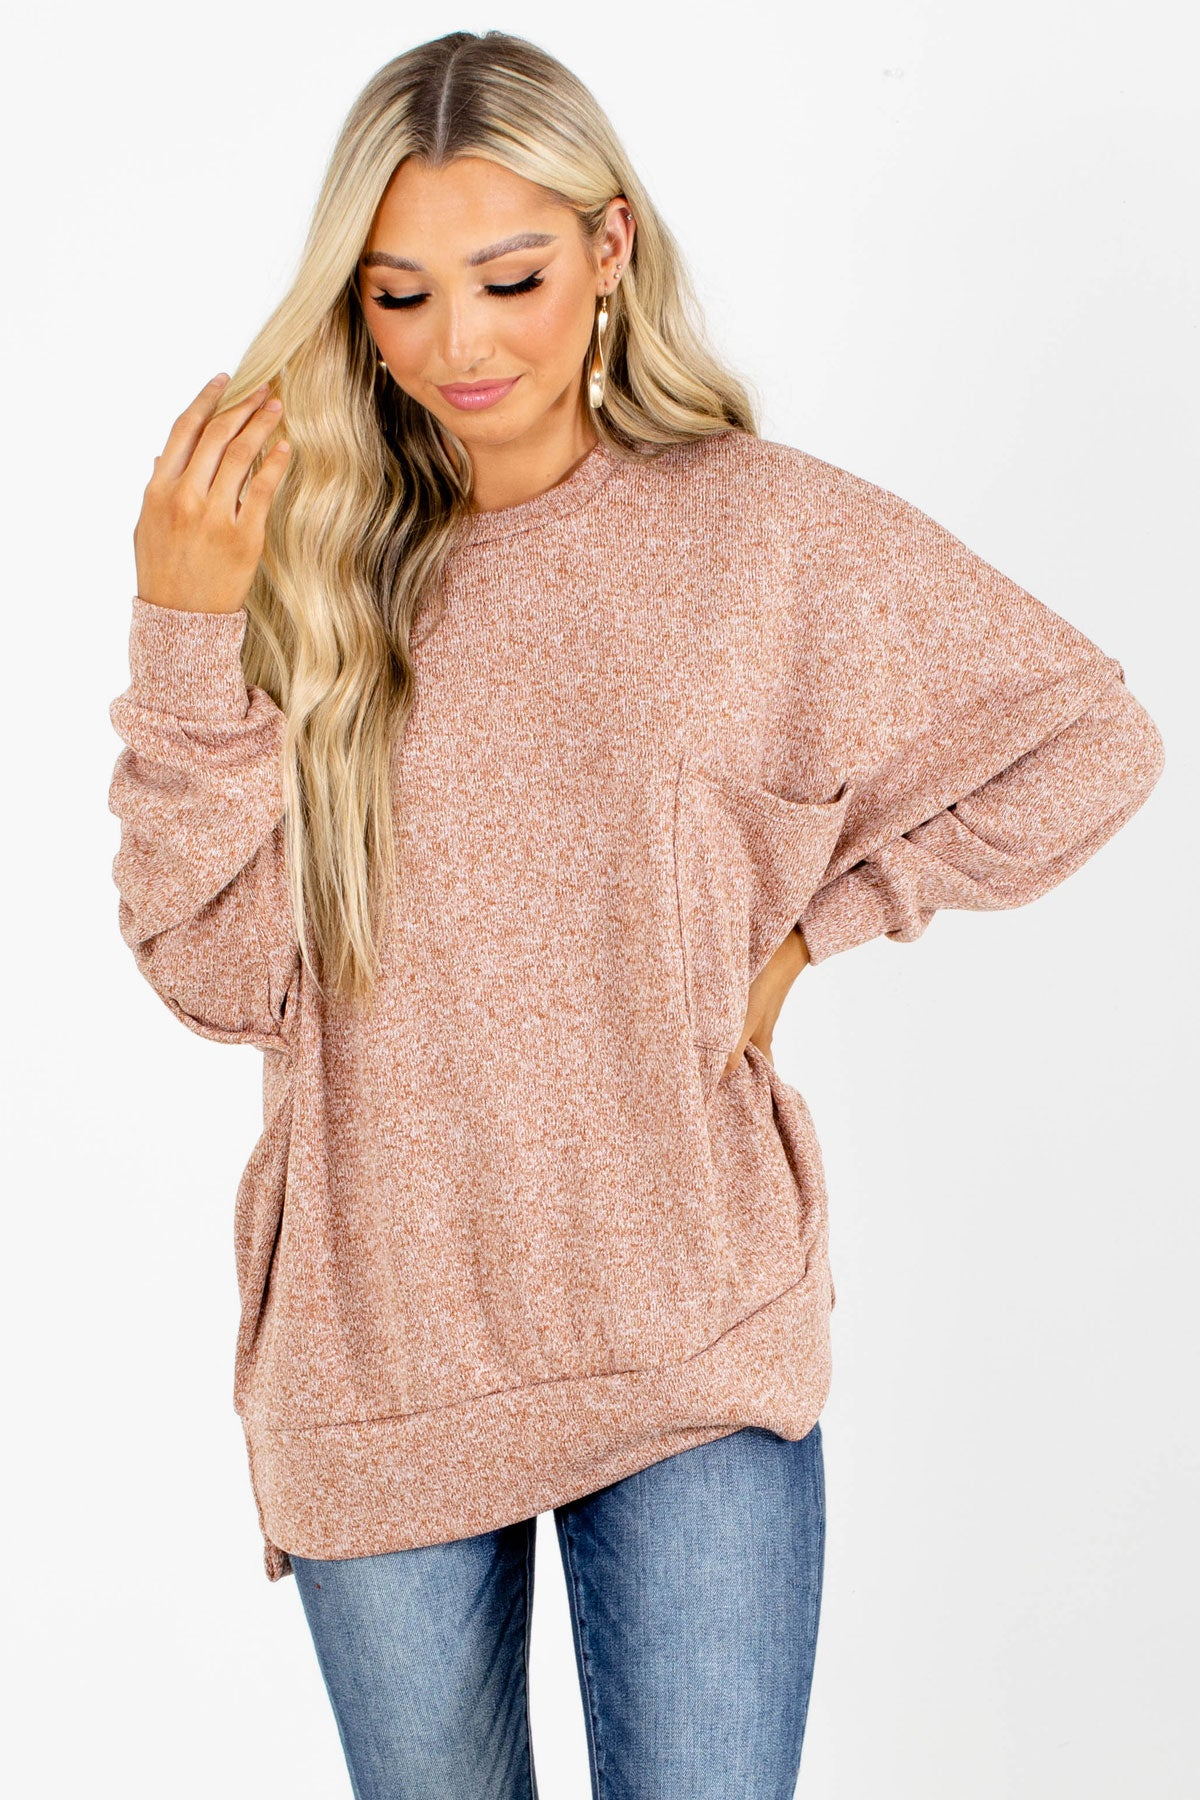 Pink Oversized Boutique Sweaters for Women